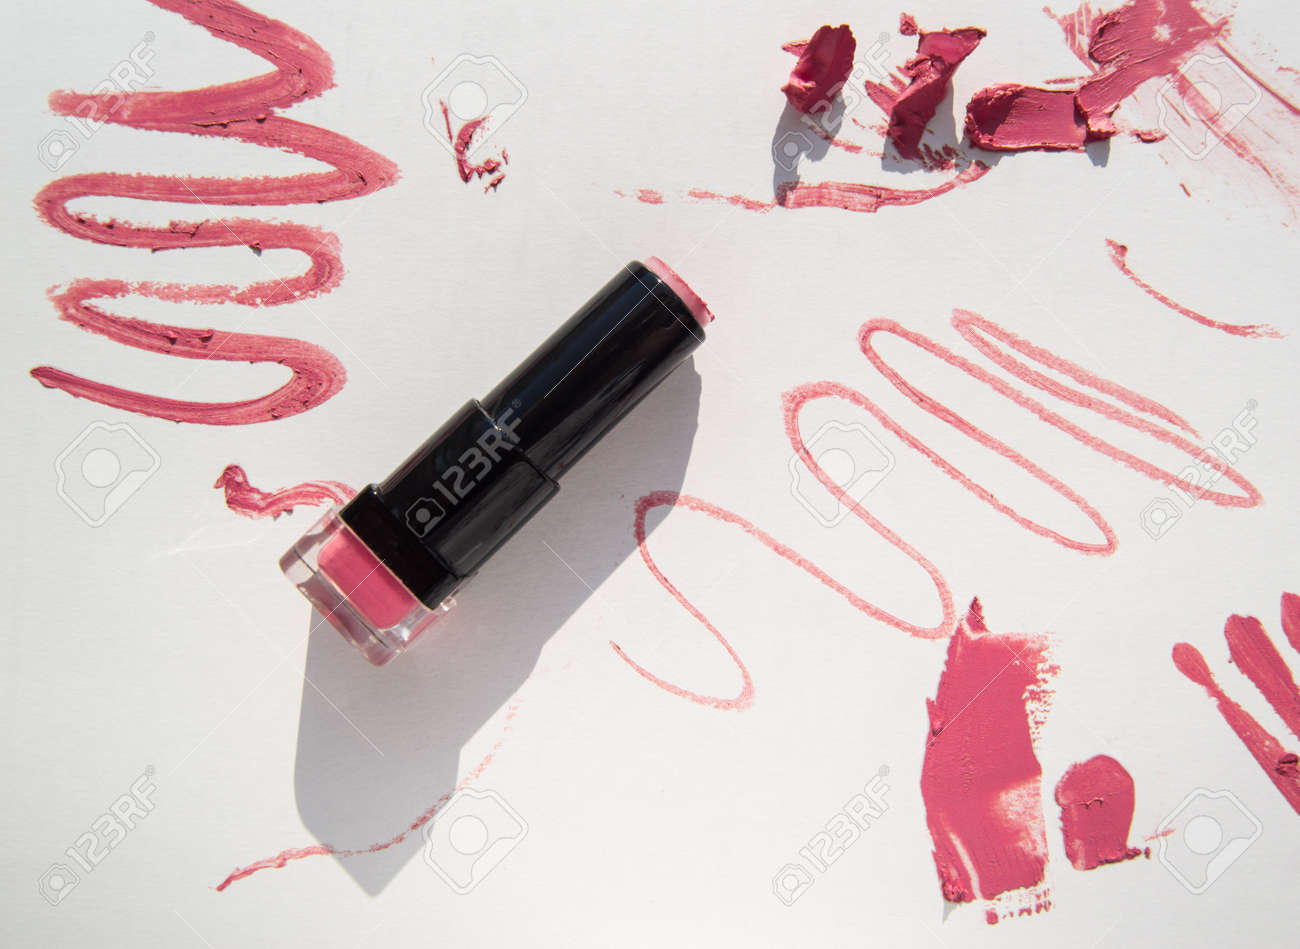 Black used tube of lipstick on a white background, various smudged lines and textures of pink, red lipstick, bright sunlight and shadows, beauty concept - 169661604